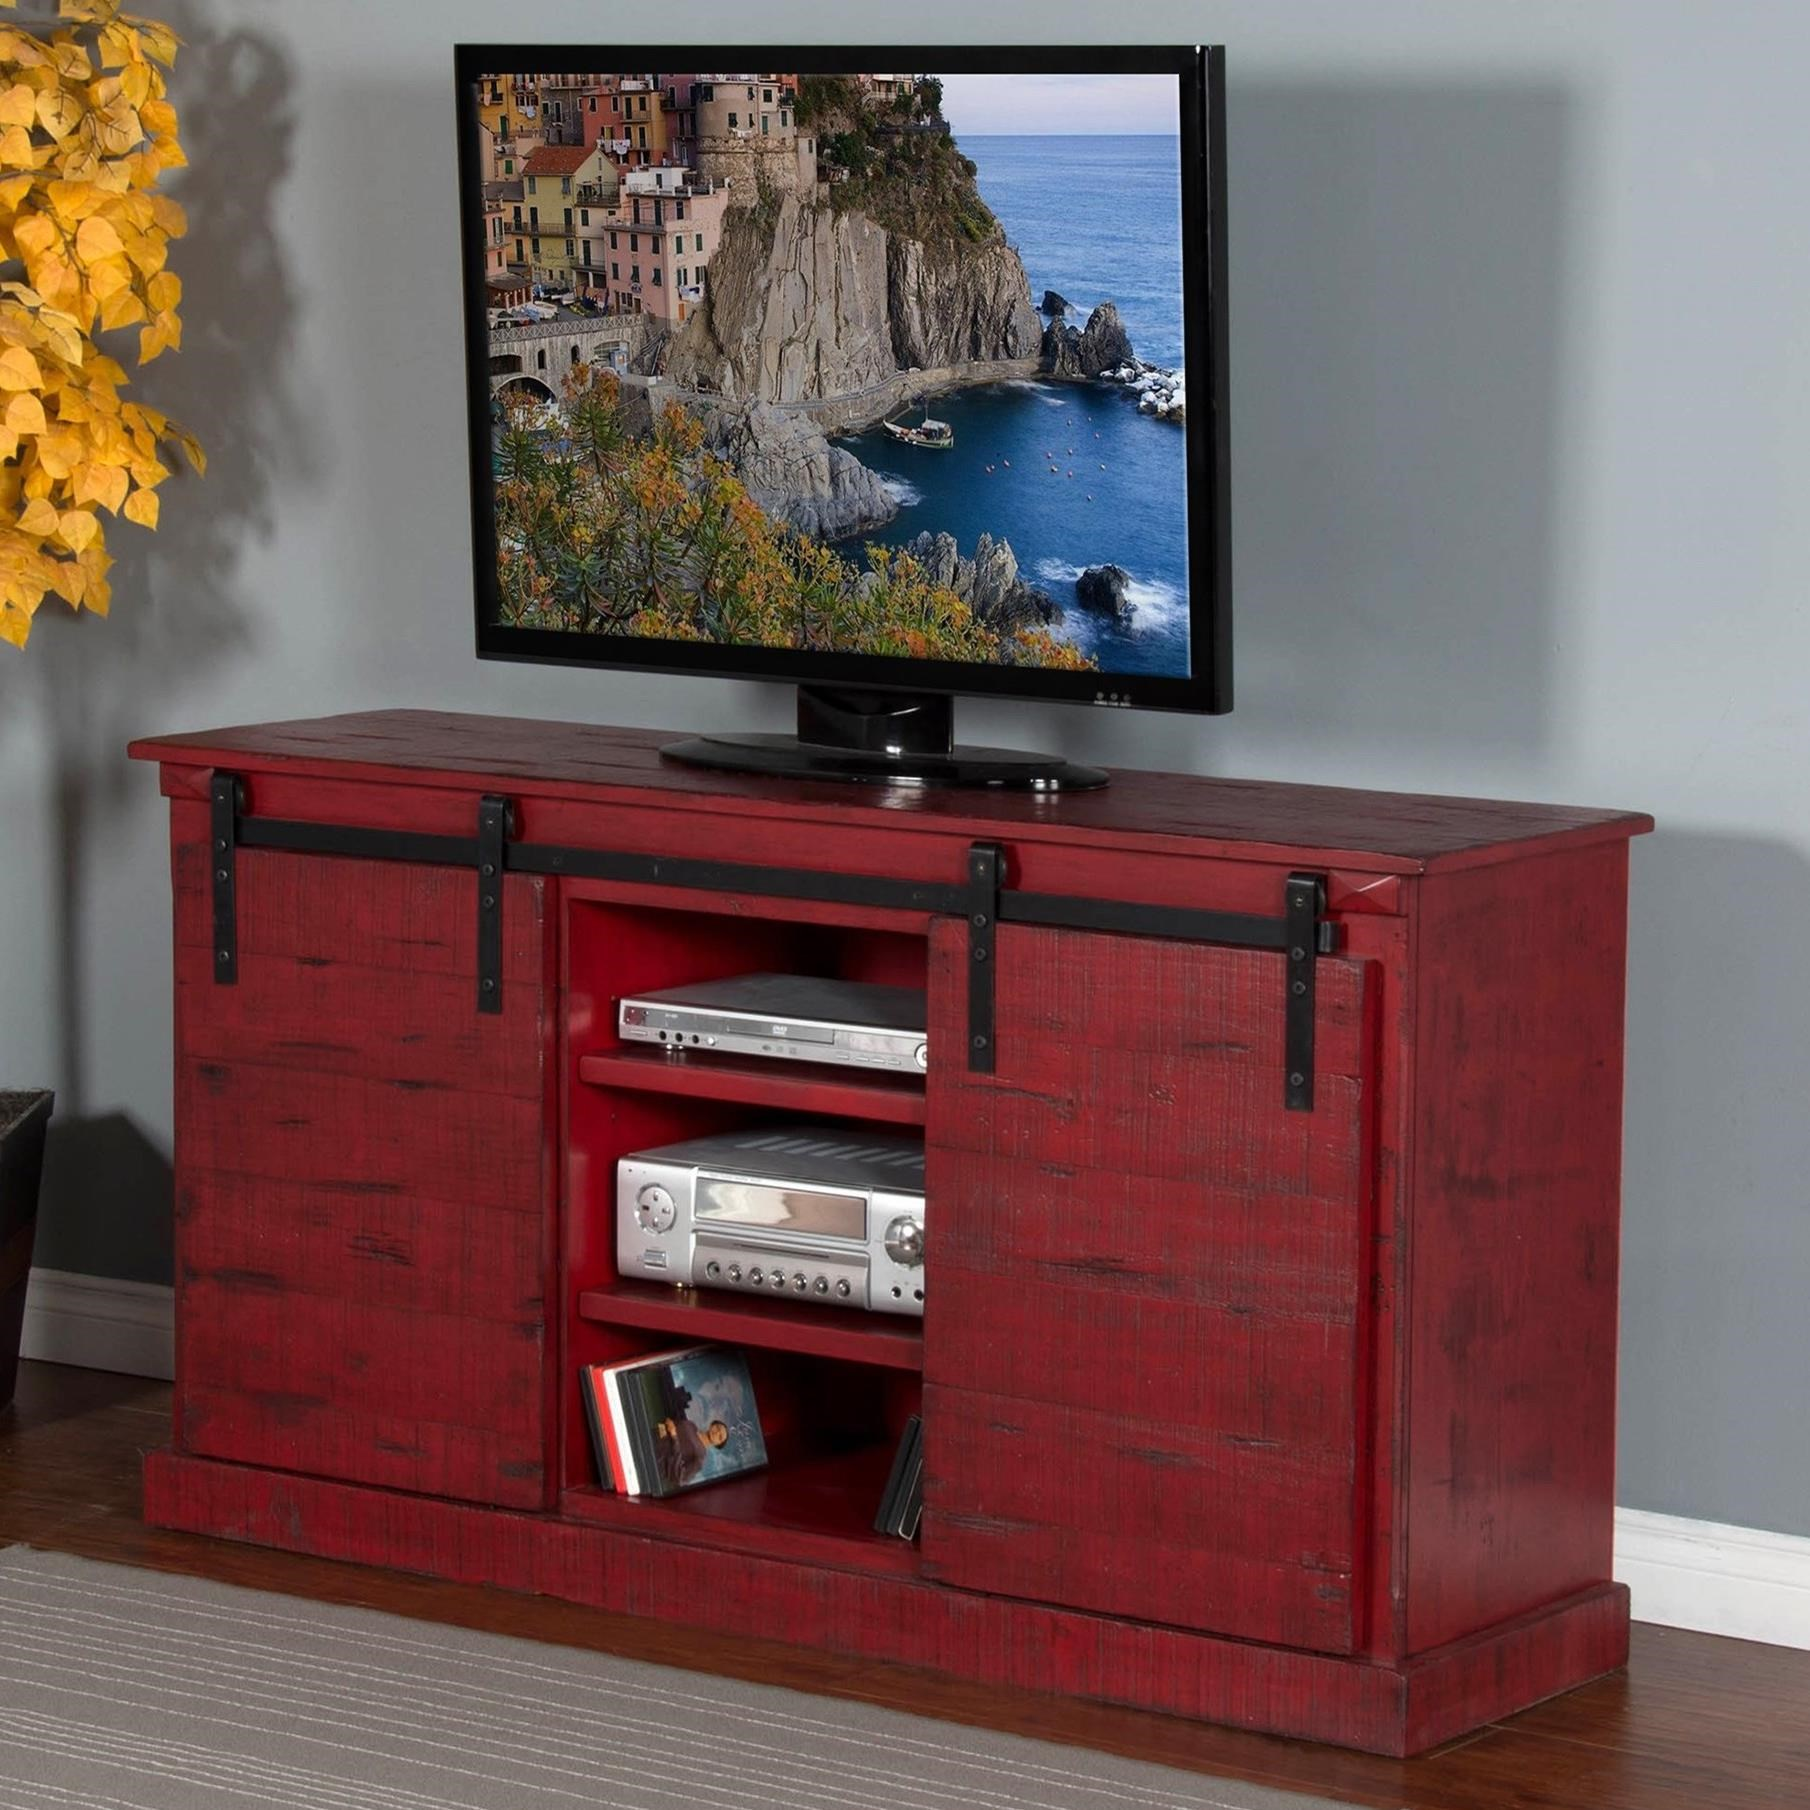 Shop tv stands wolf and gardiner wolf furniture 65 tv console w barn doors geotapseo Image collections